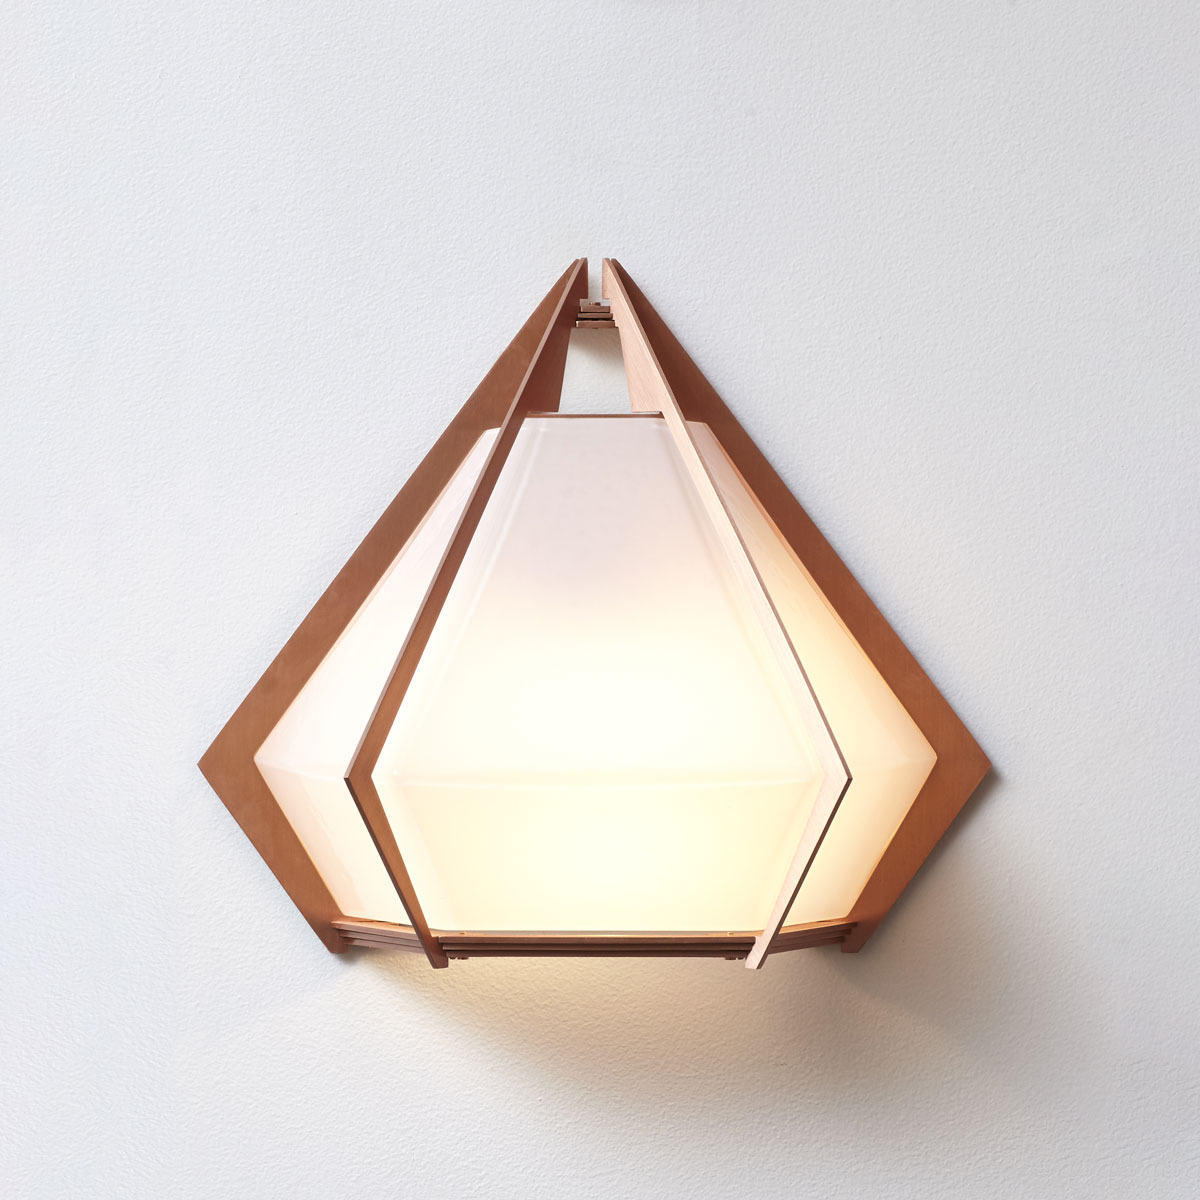 Gs harlow wall sconce hero